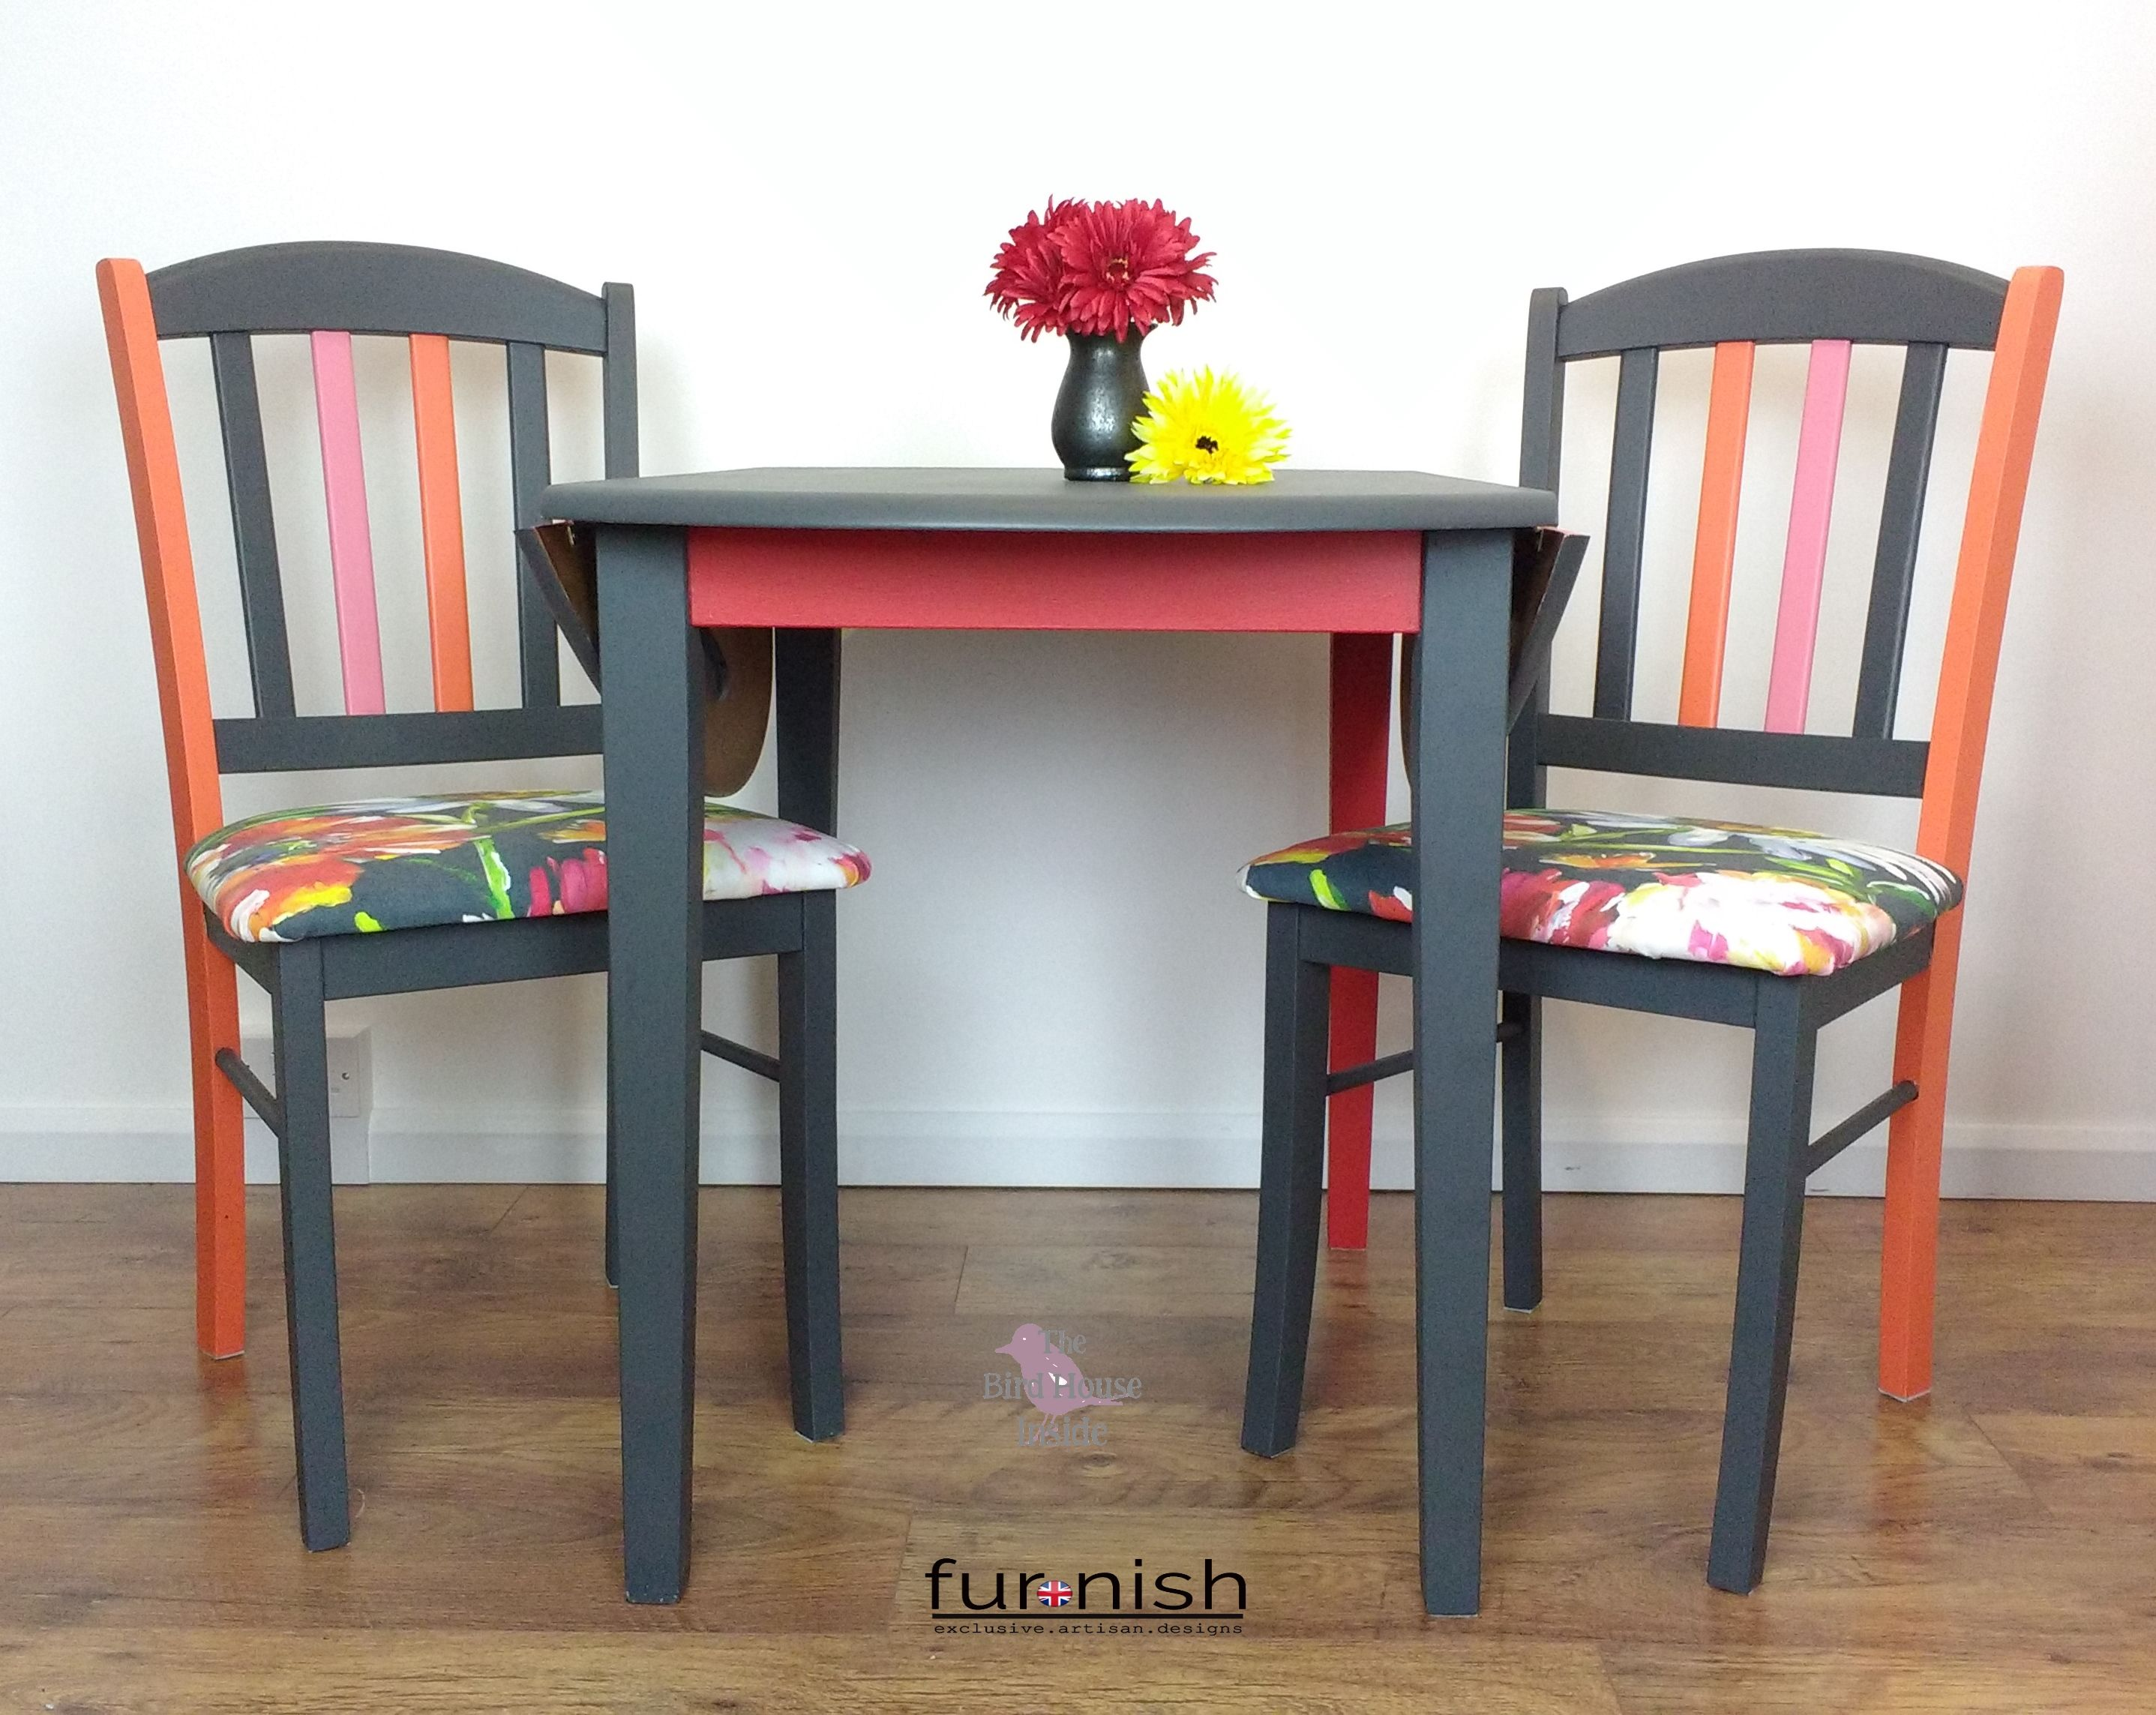 Dining Table Set Table With 2 Chairs Kitchen Table Set Drop Leaf Table With Two Chairs Kitchen Table Small Space Kitchen Table Settings Small Dining Table